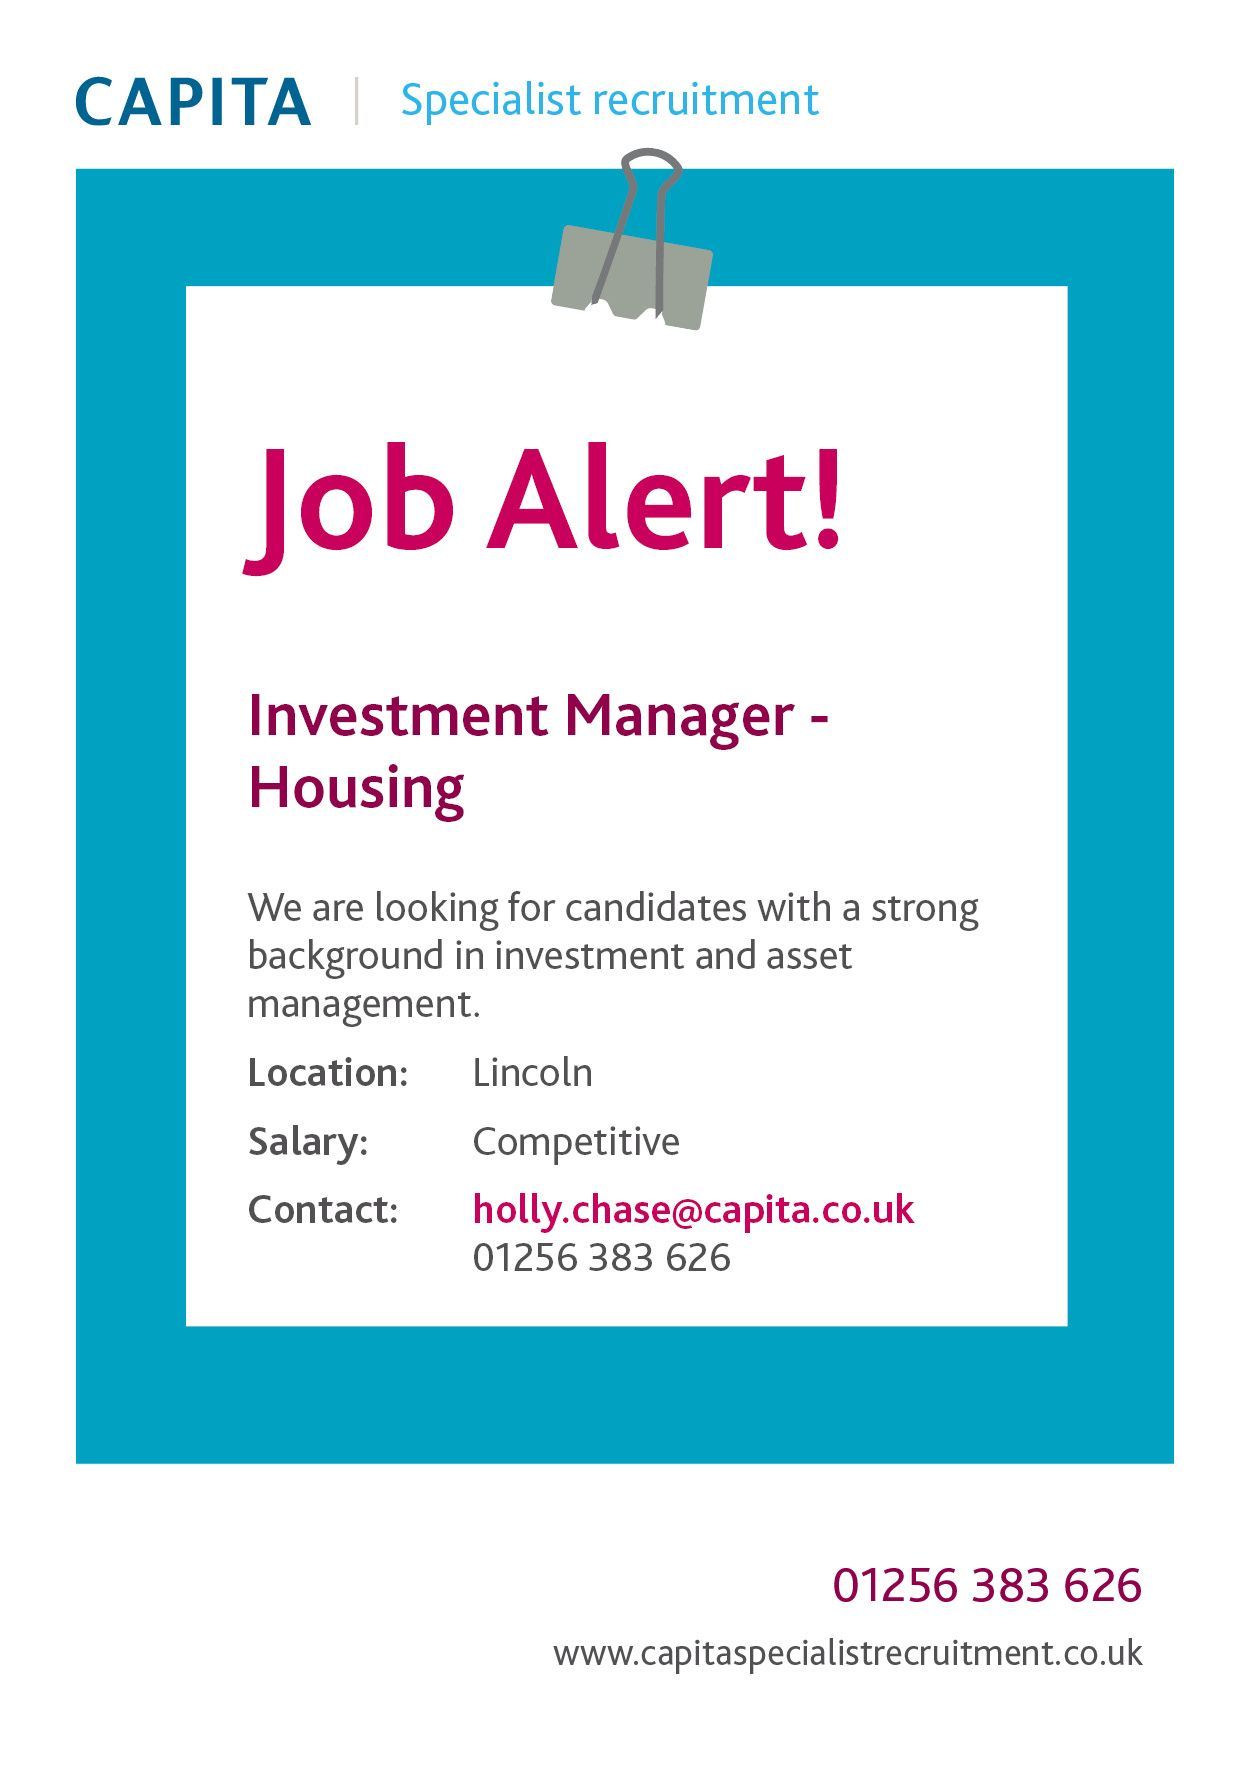 Investment Manager Housing (With images) Job, Employee